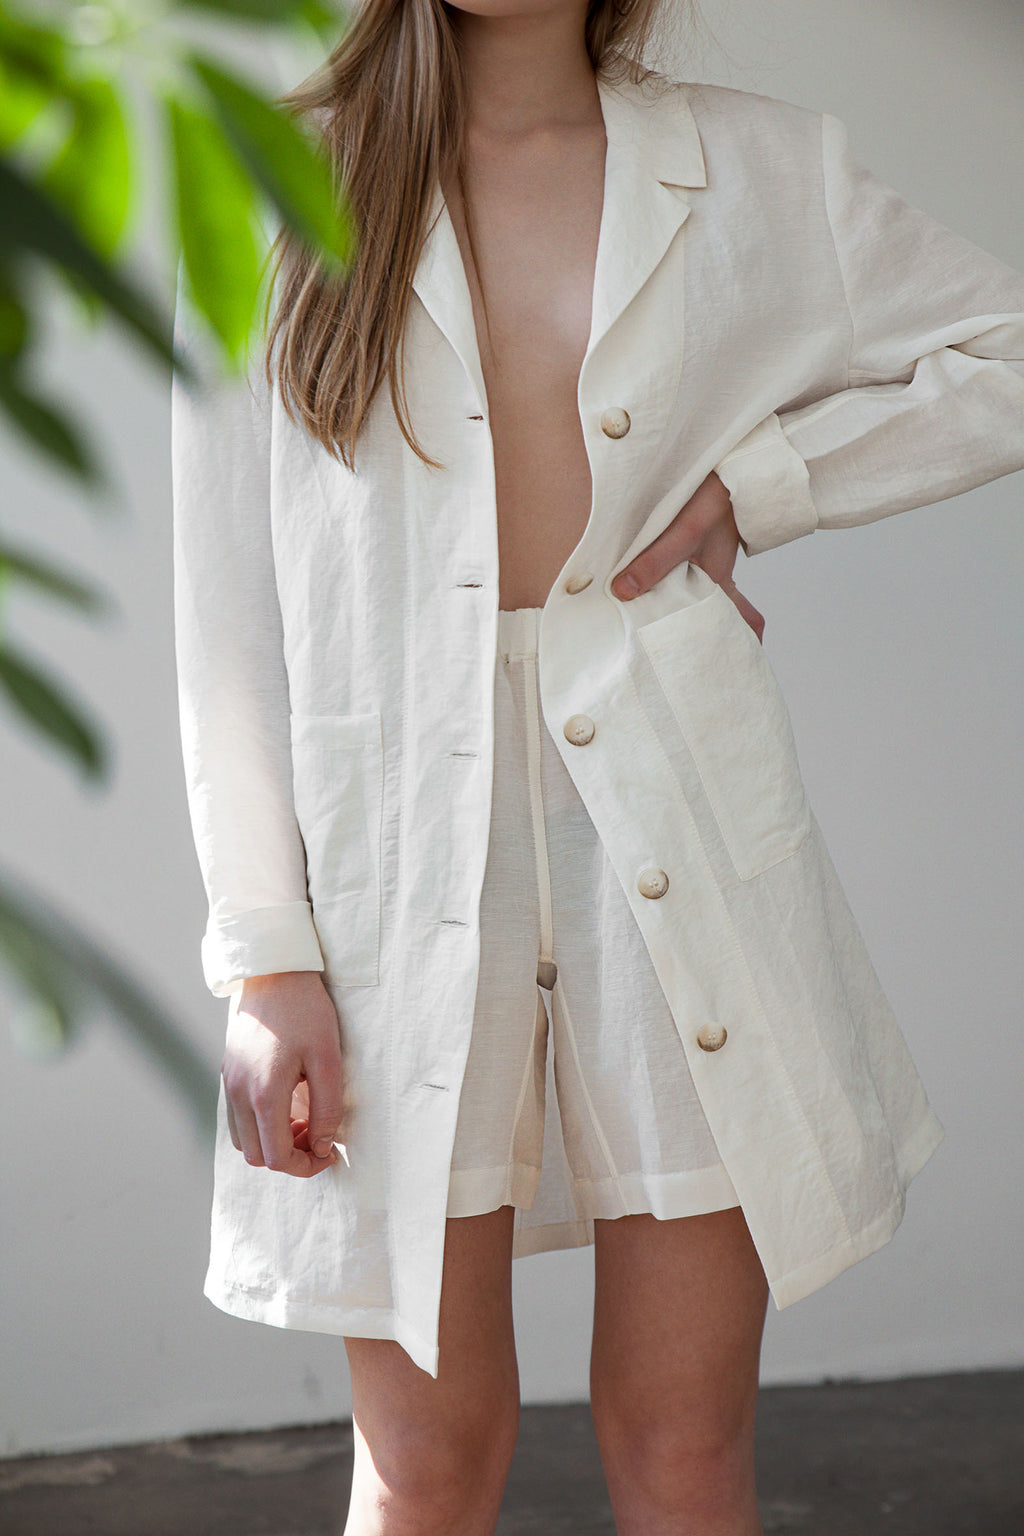 Blazer jacket/ dress